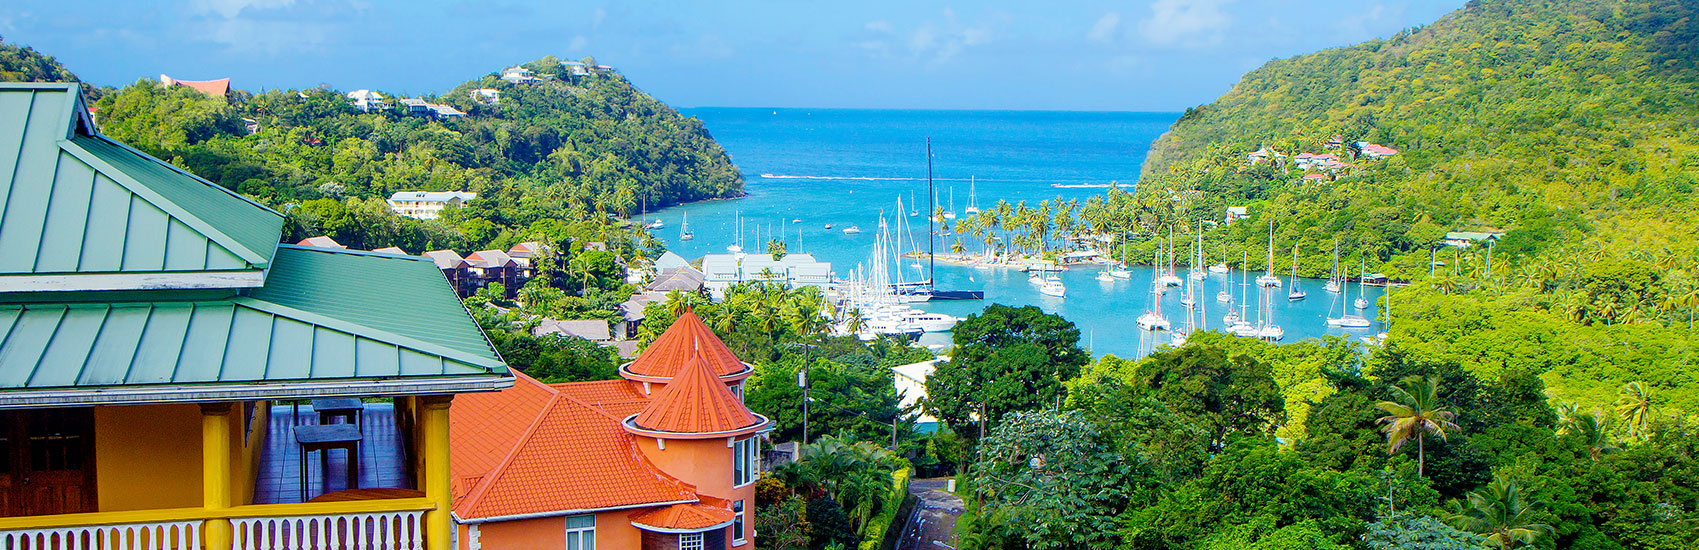 Sun-Drenched Caribbean with Pleasant Holidays